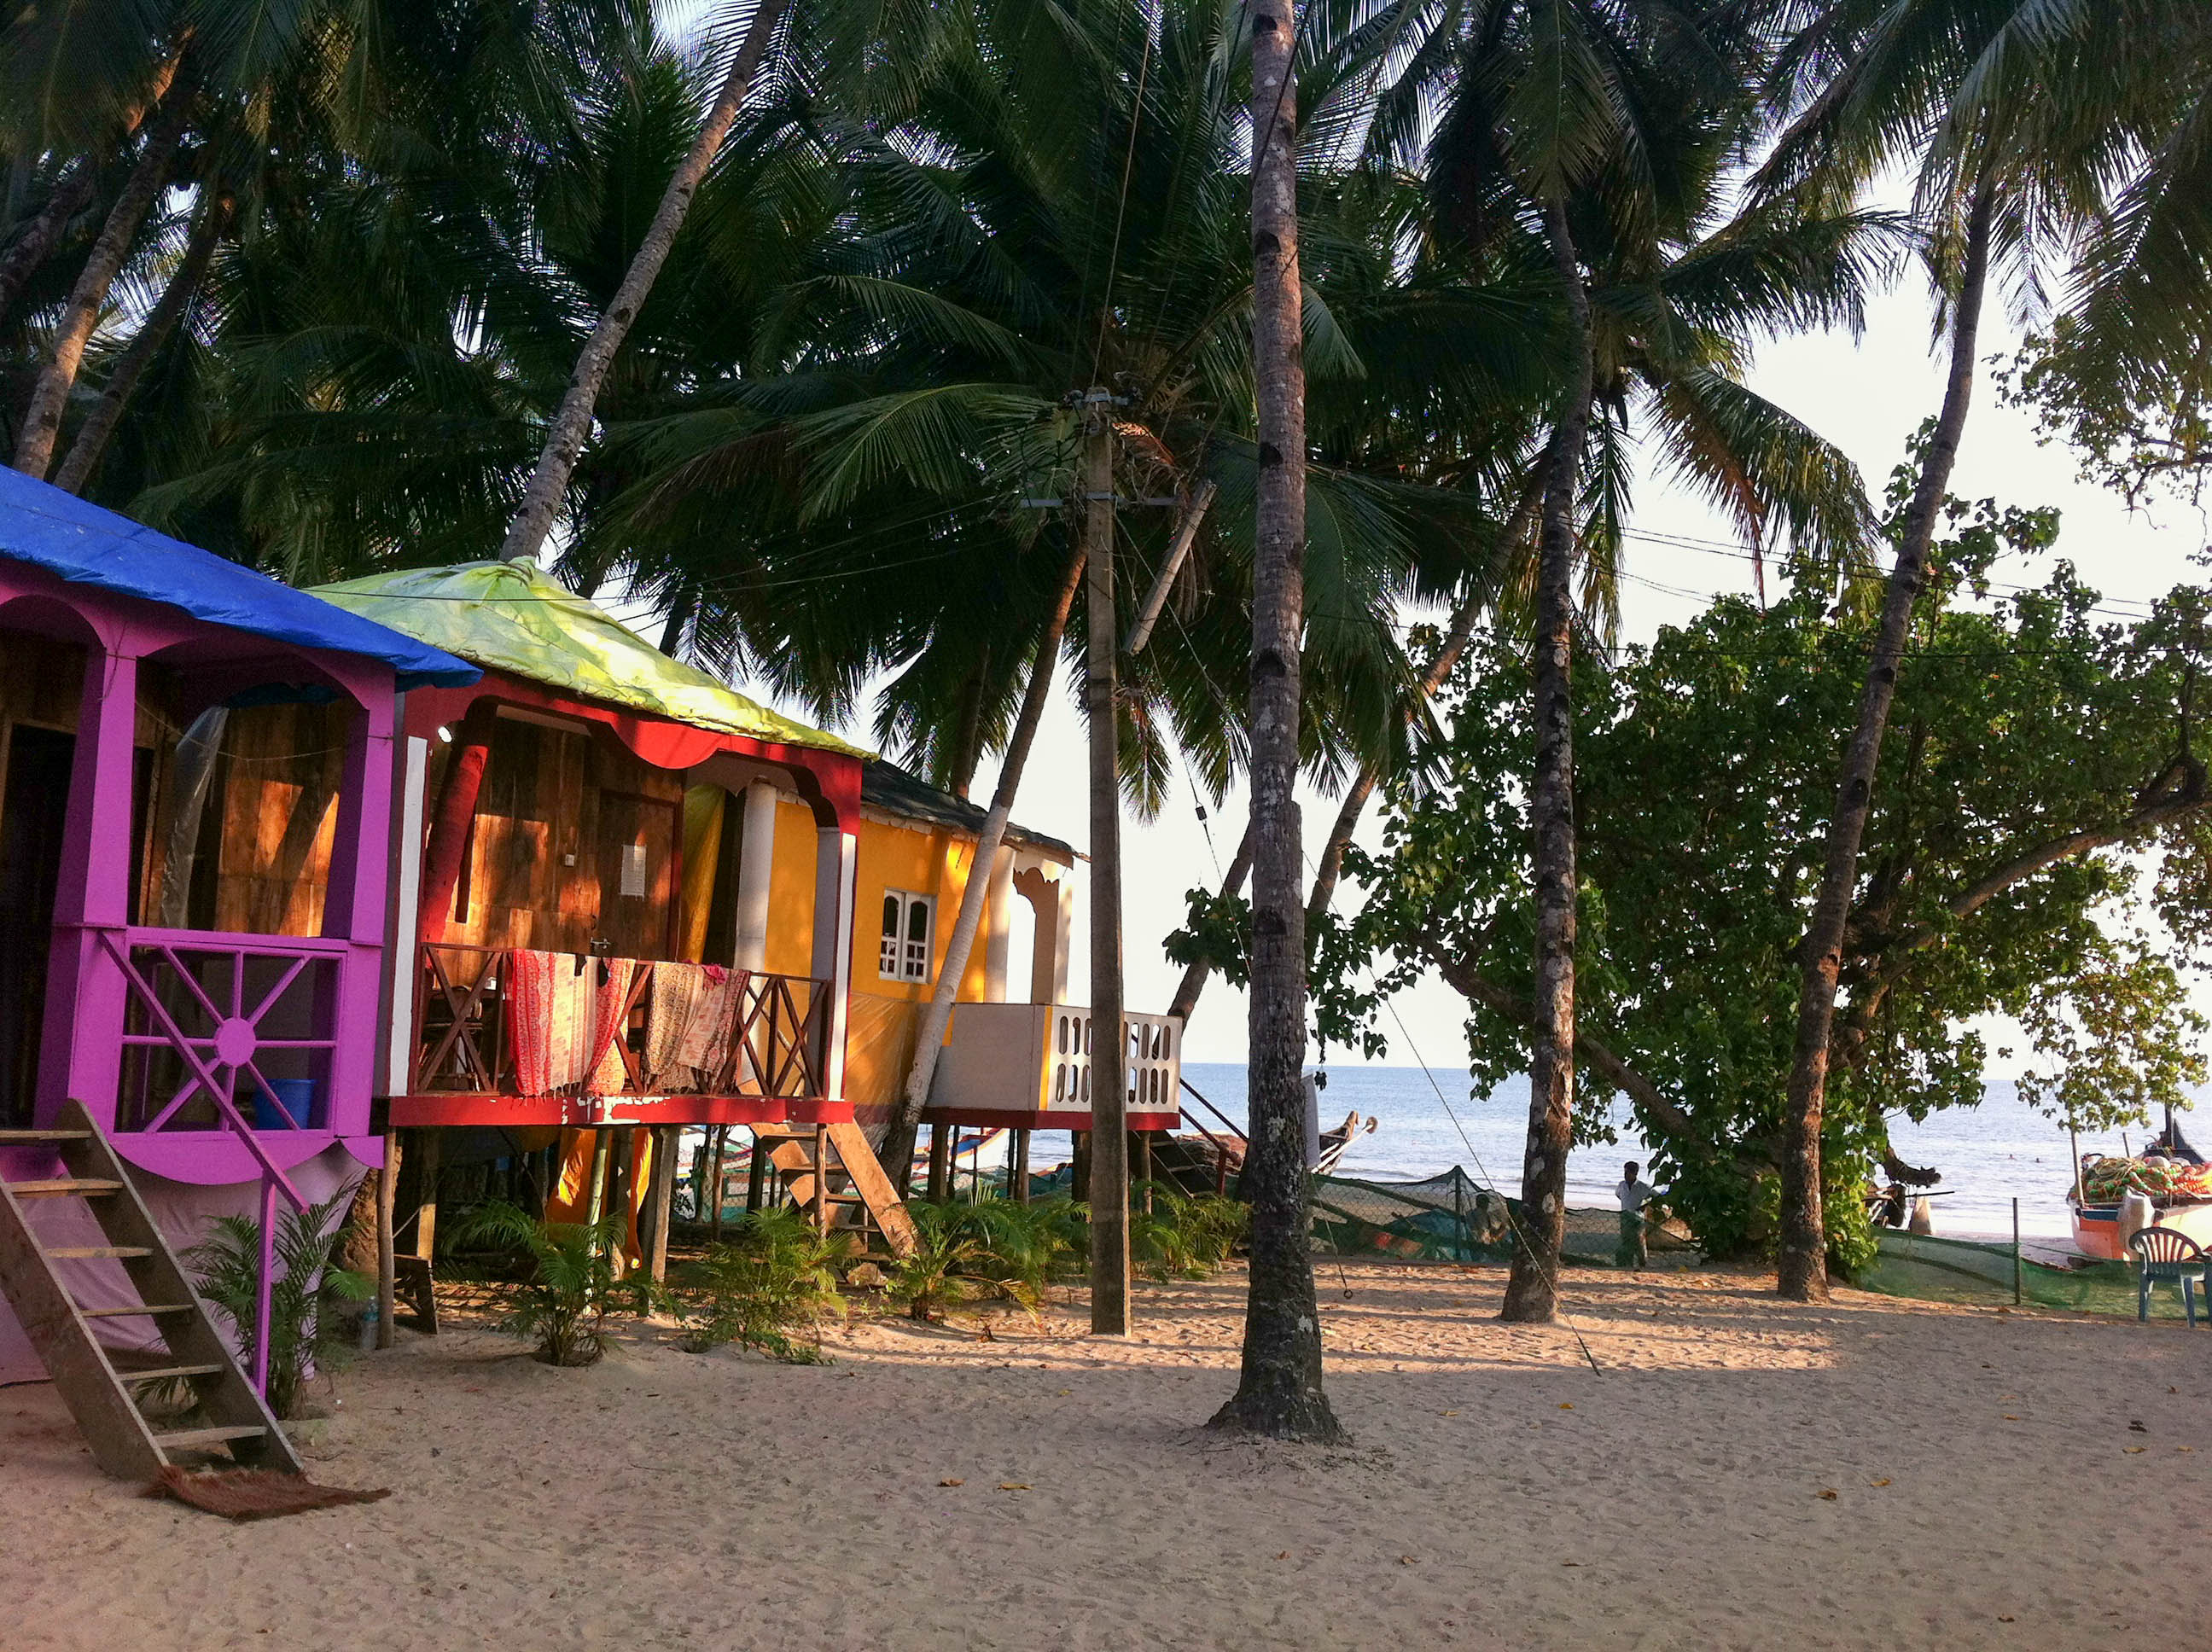 Relax in Palolem in 2013